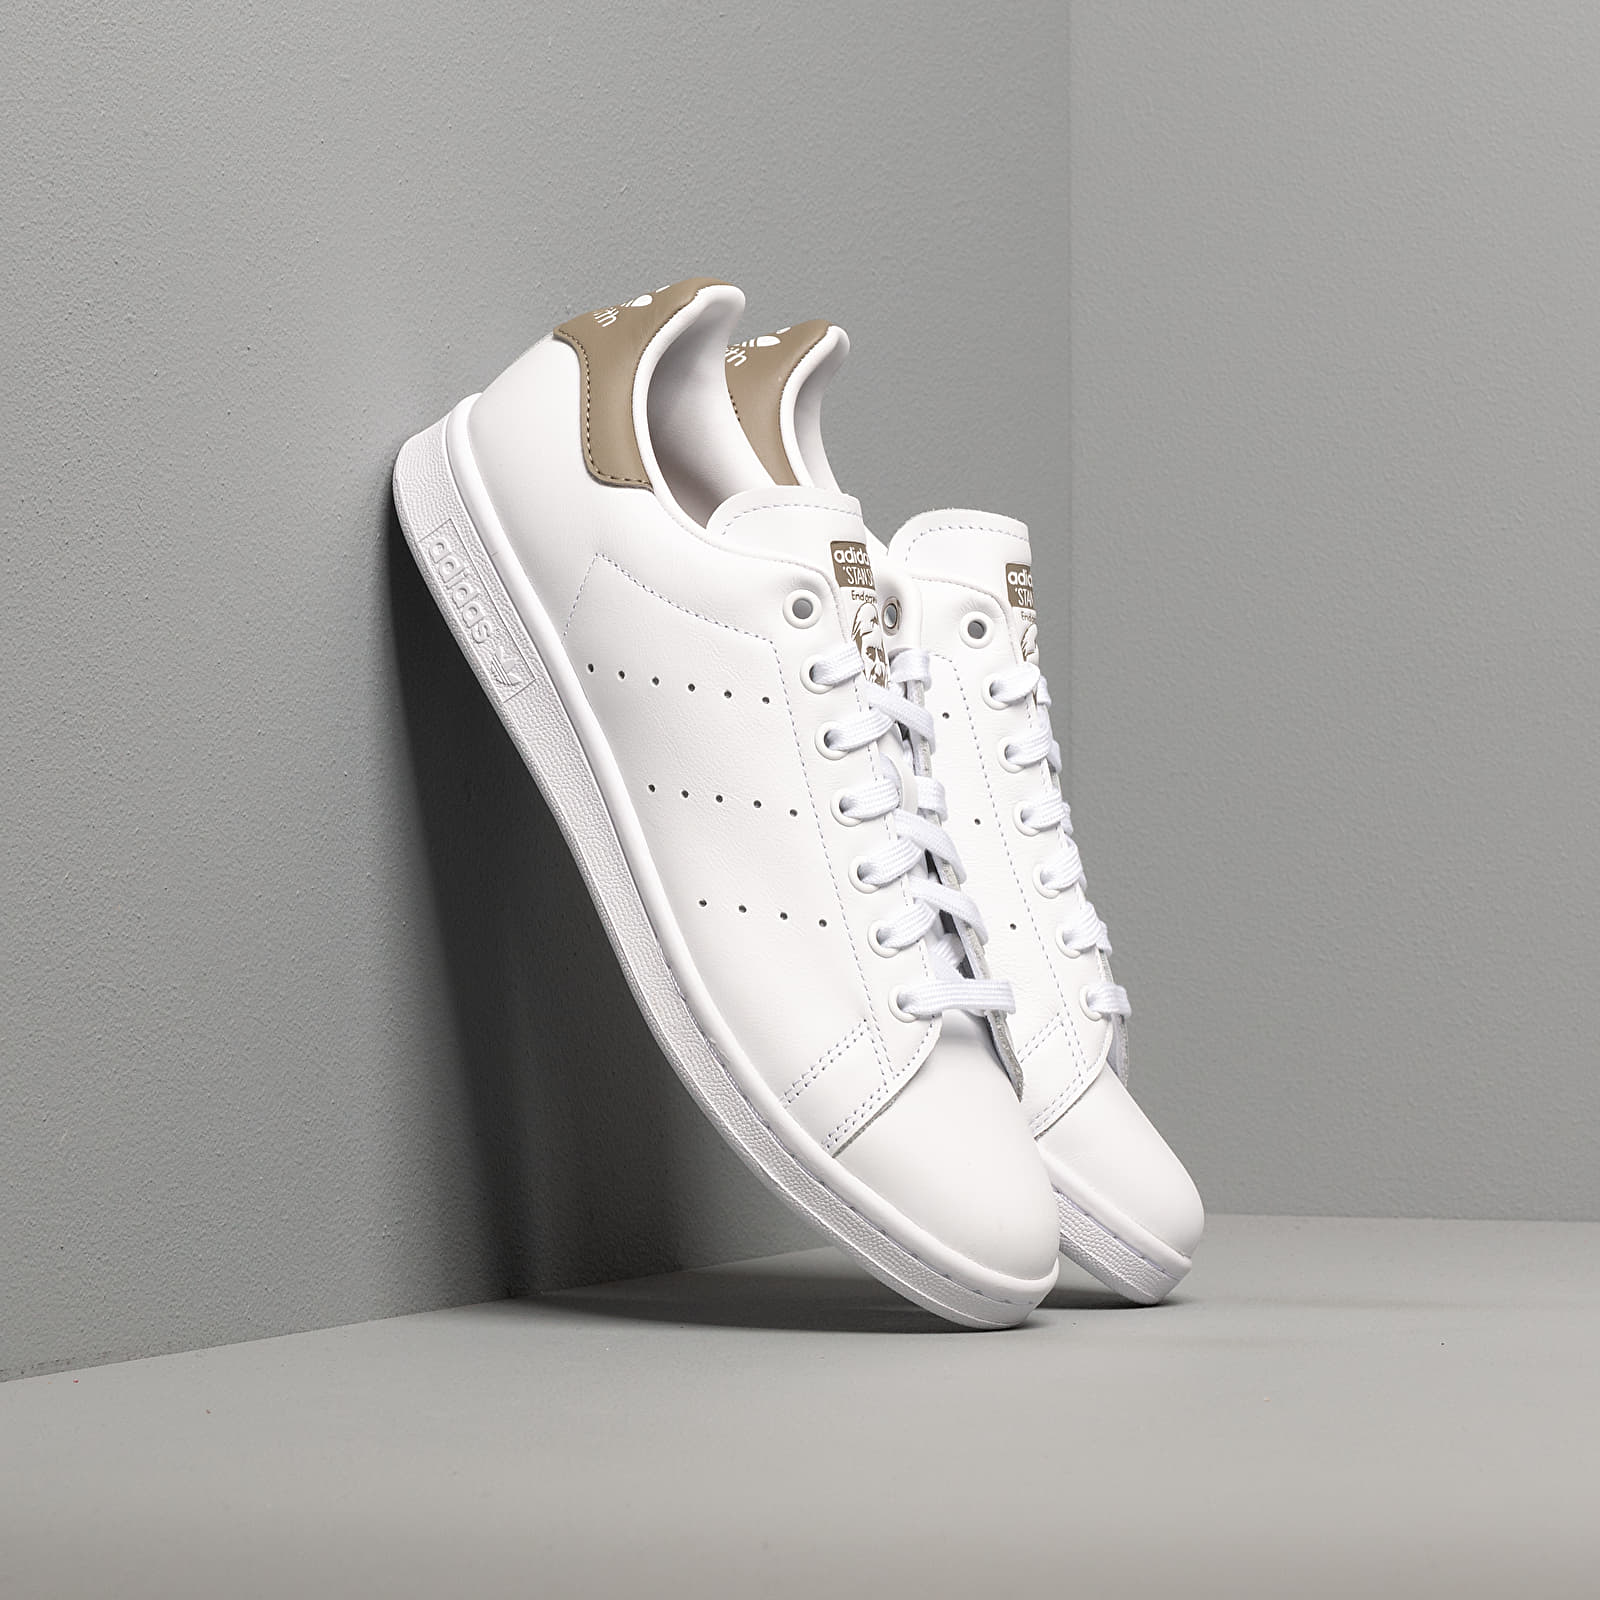 Men's shoes adidas Stan Smith Ftw White/ Trace Cargo/ Ftw White